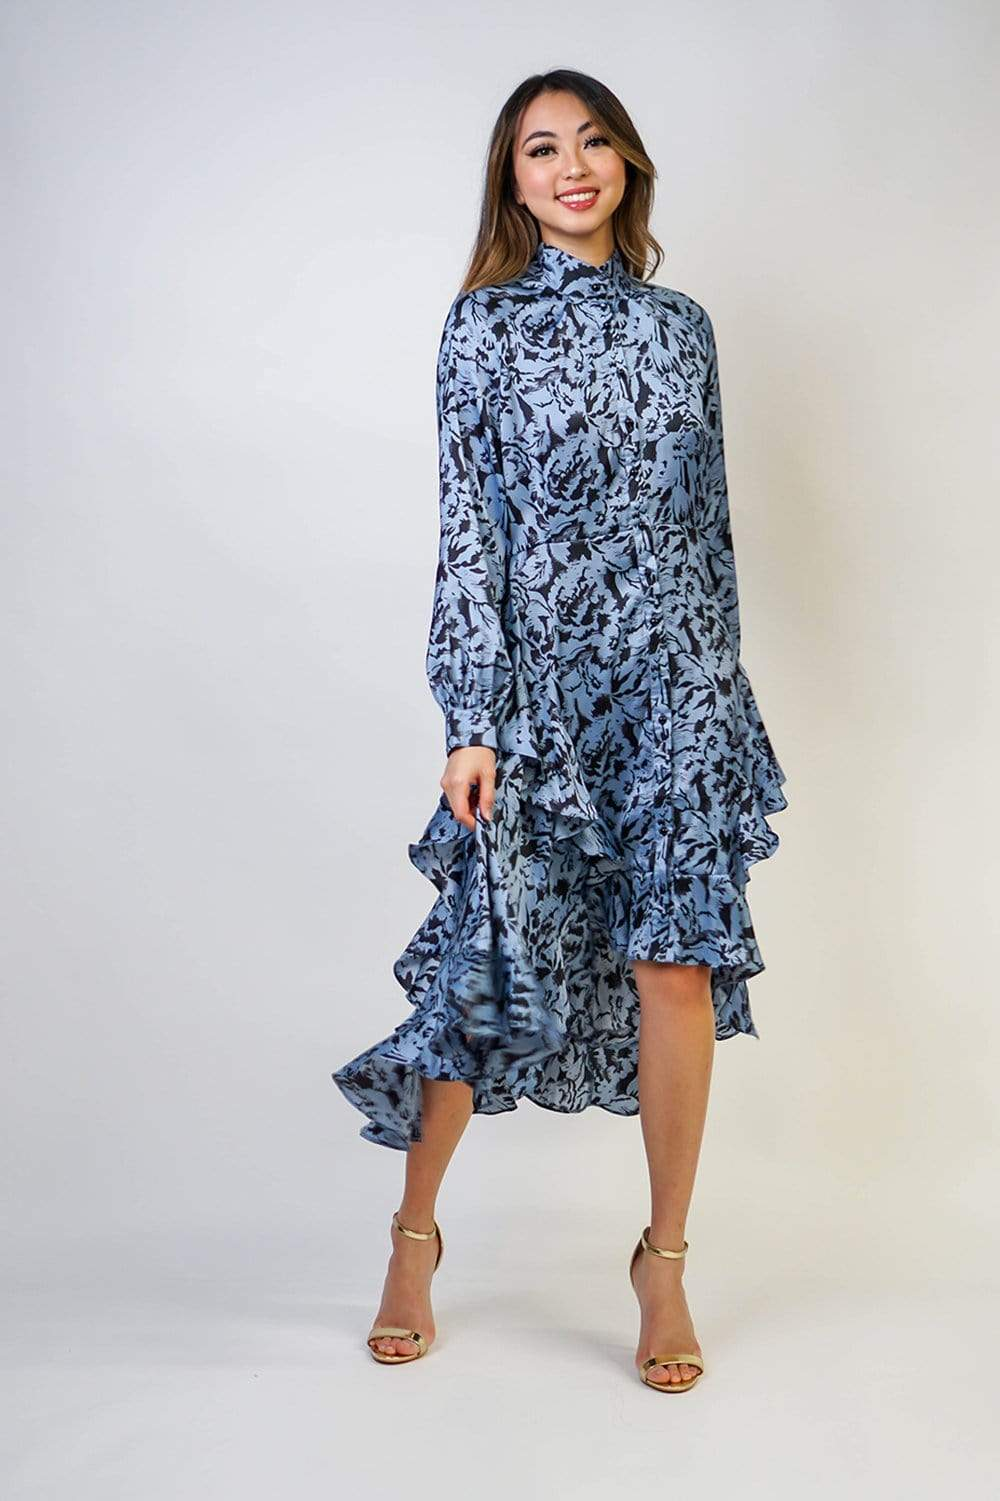 DRESS Ruffle Mandarin Long Sleeve Dress - Chloe Dao